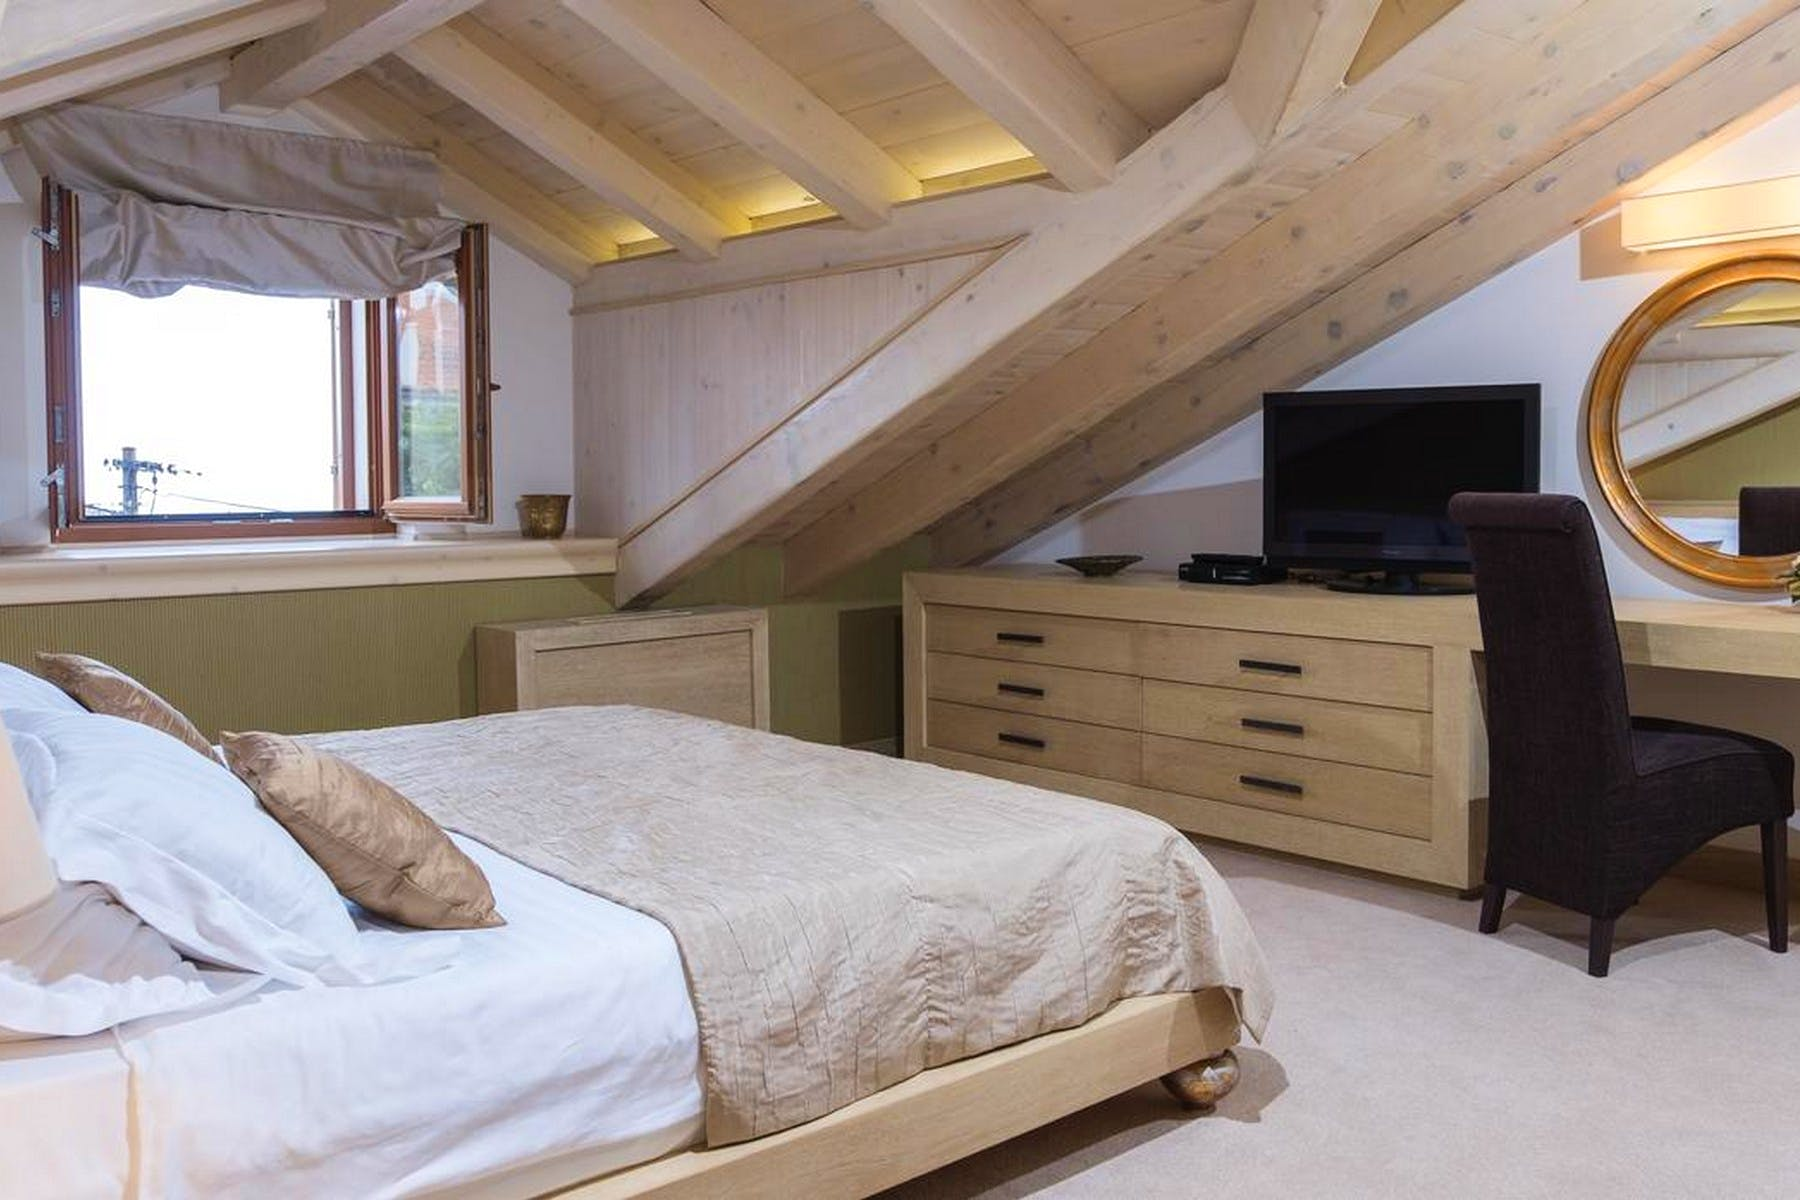 Double bedroom enhanced by traditional wood beams